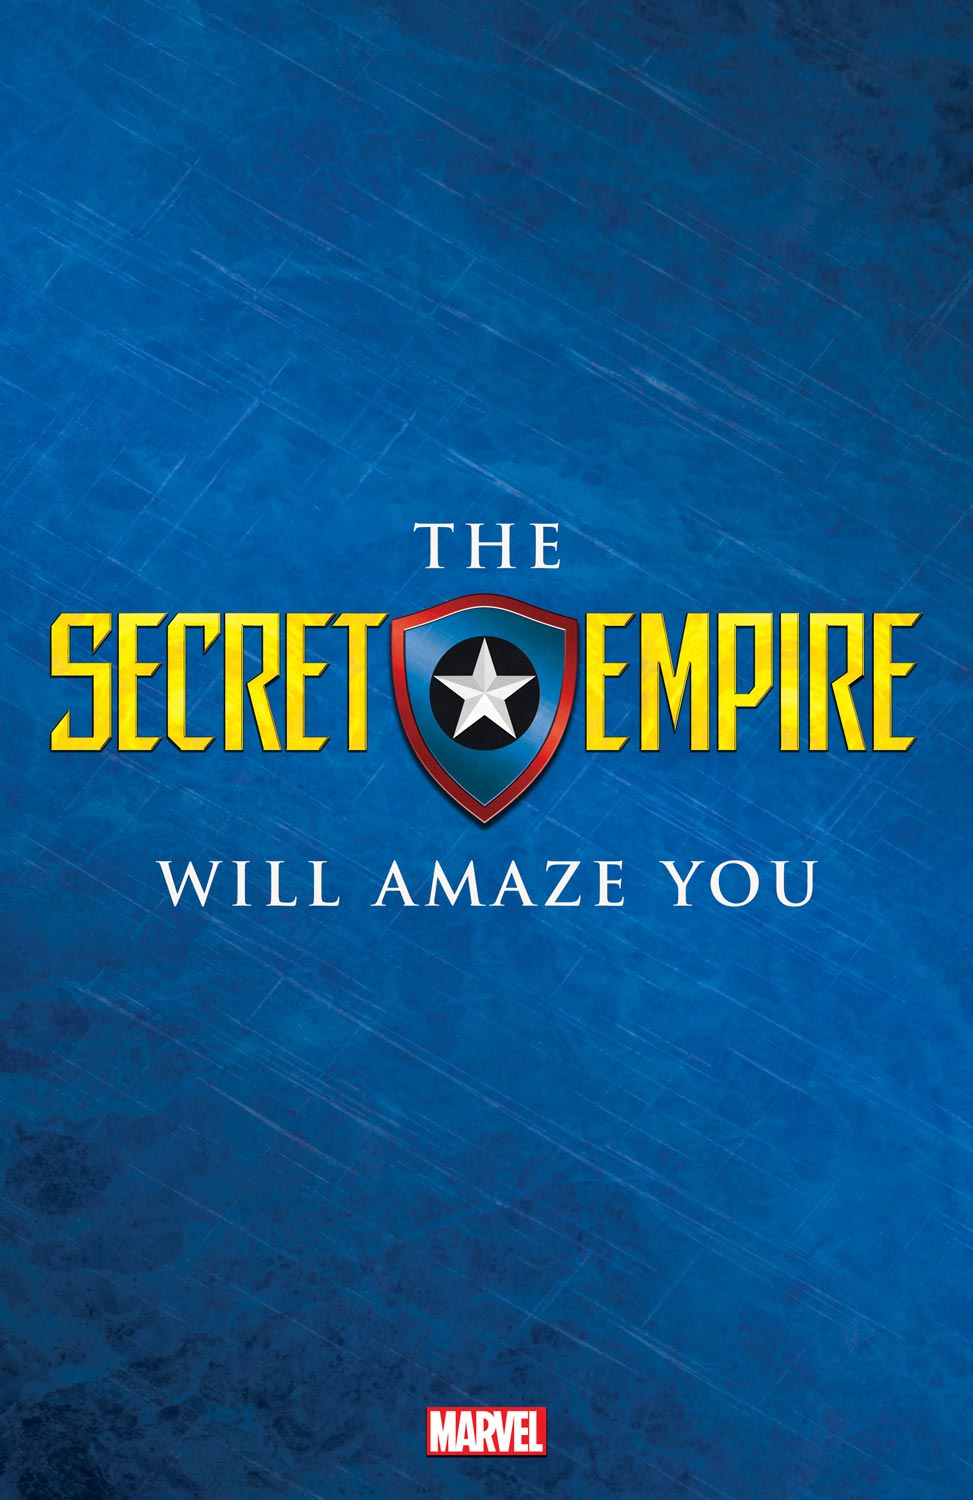 New Secret Empire Promo Images Tease Possible Spinoff Books